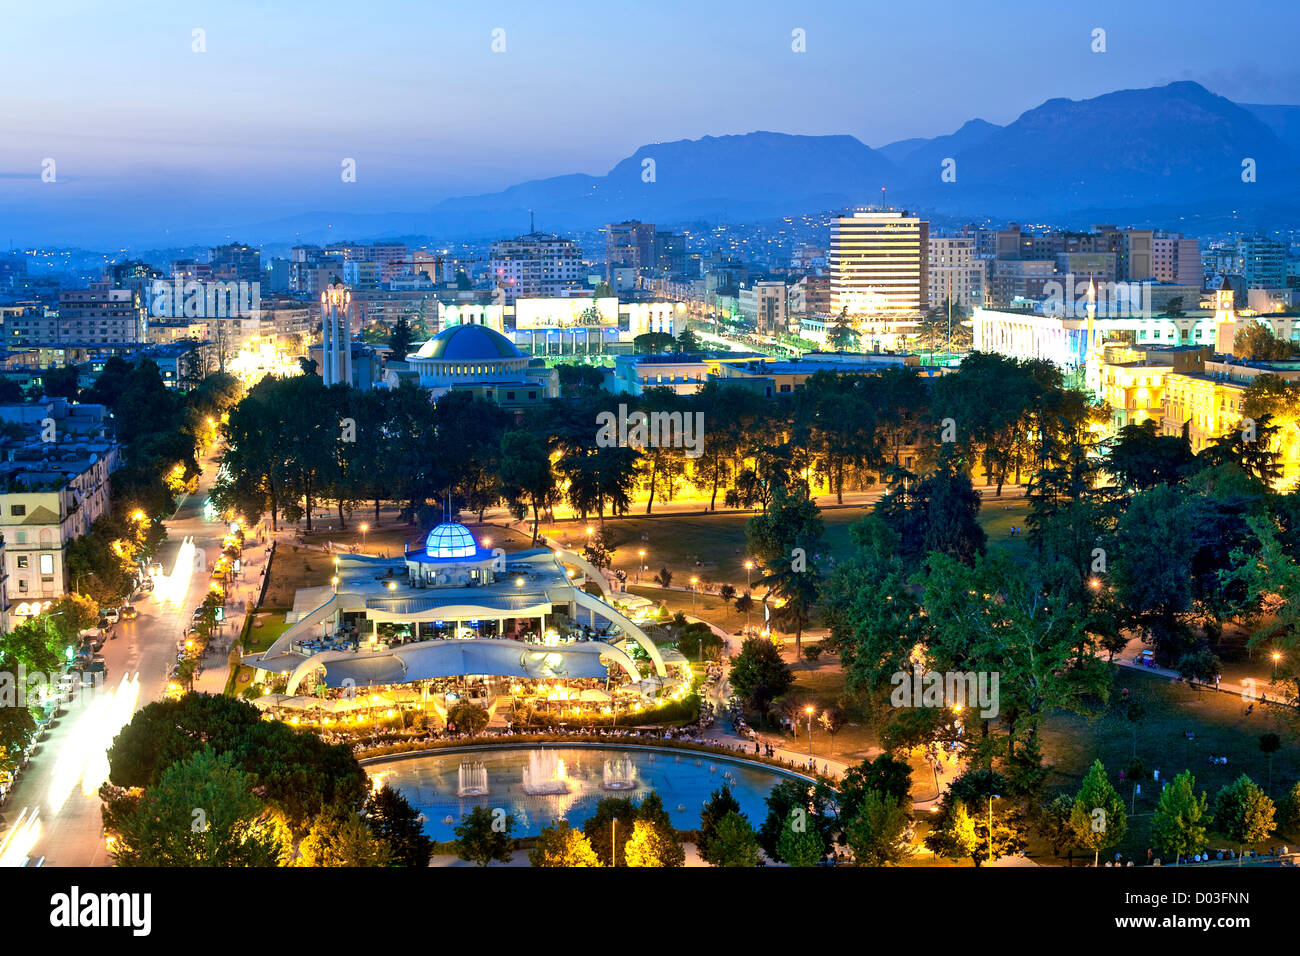 Dusk view of Tirana, the capital of Albania. In the foreground is Rinia Park. - Stock Image